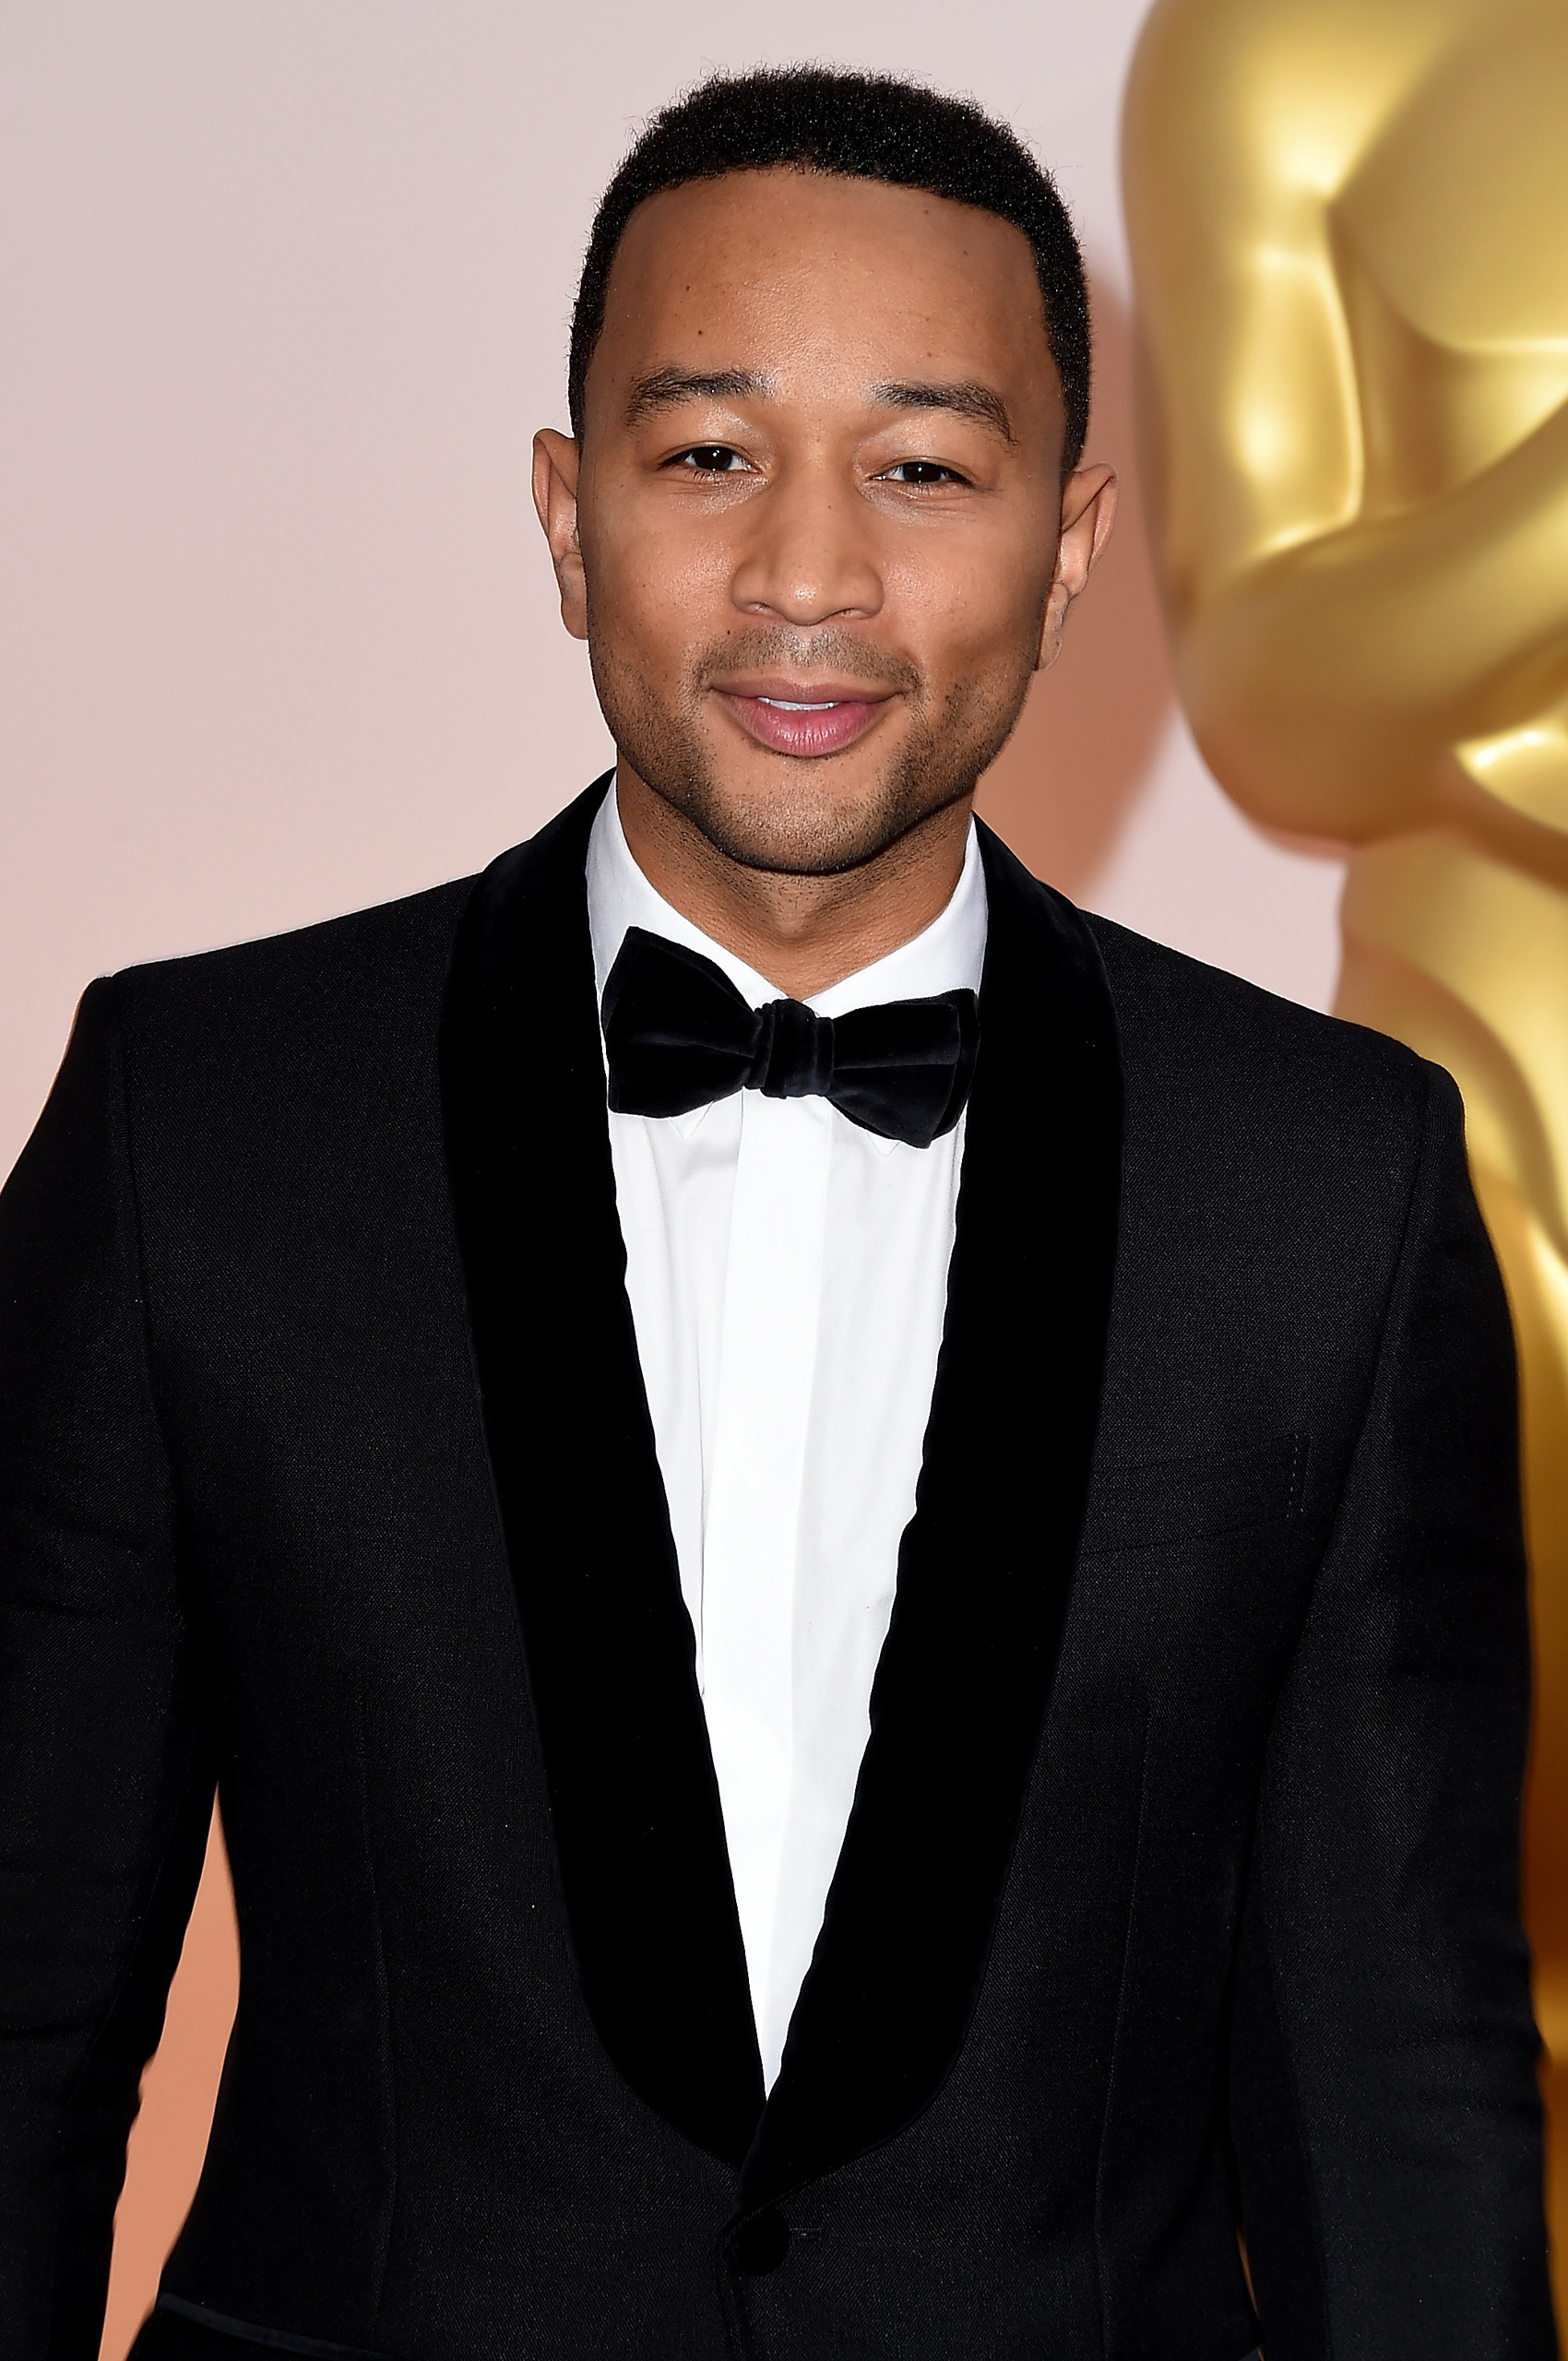 John Legend attends the 87th Annual Academy Awards on Feb. 22, 2015 in Hollywood, Calif.